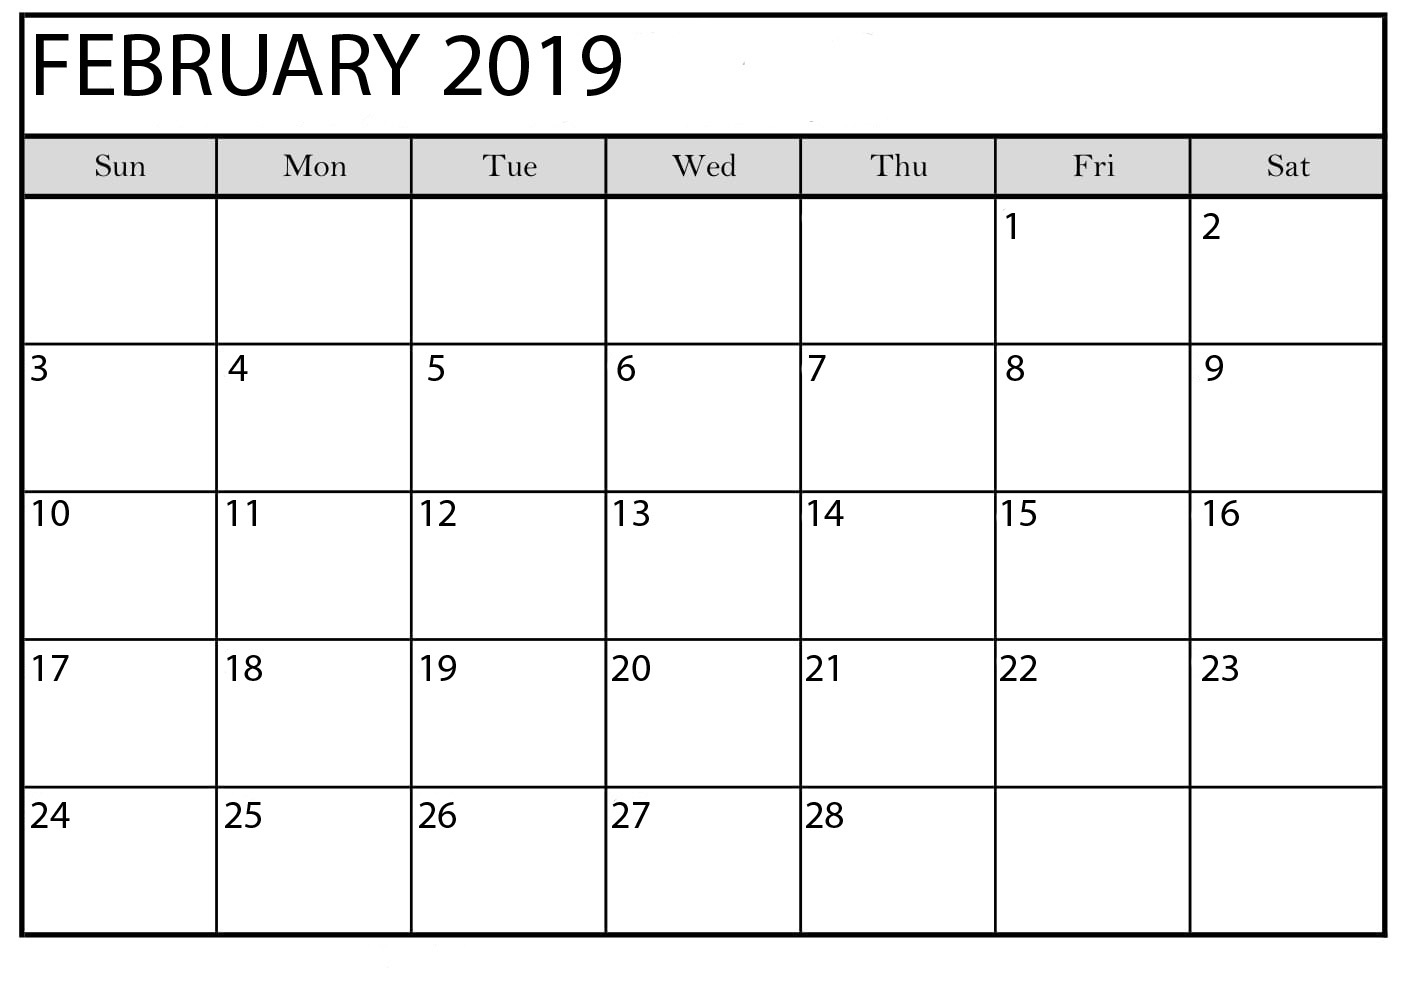 February 2019 Calendar Printable Editable - Free Printable Calendar intended for February Calendar Printable Template Blank